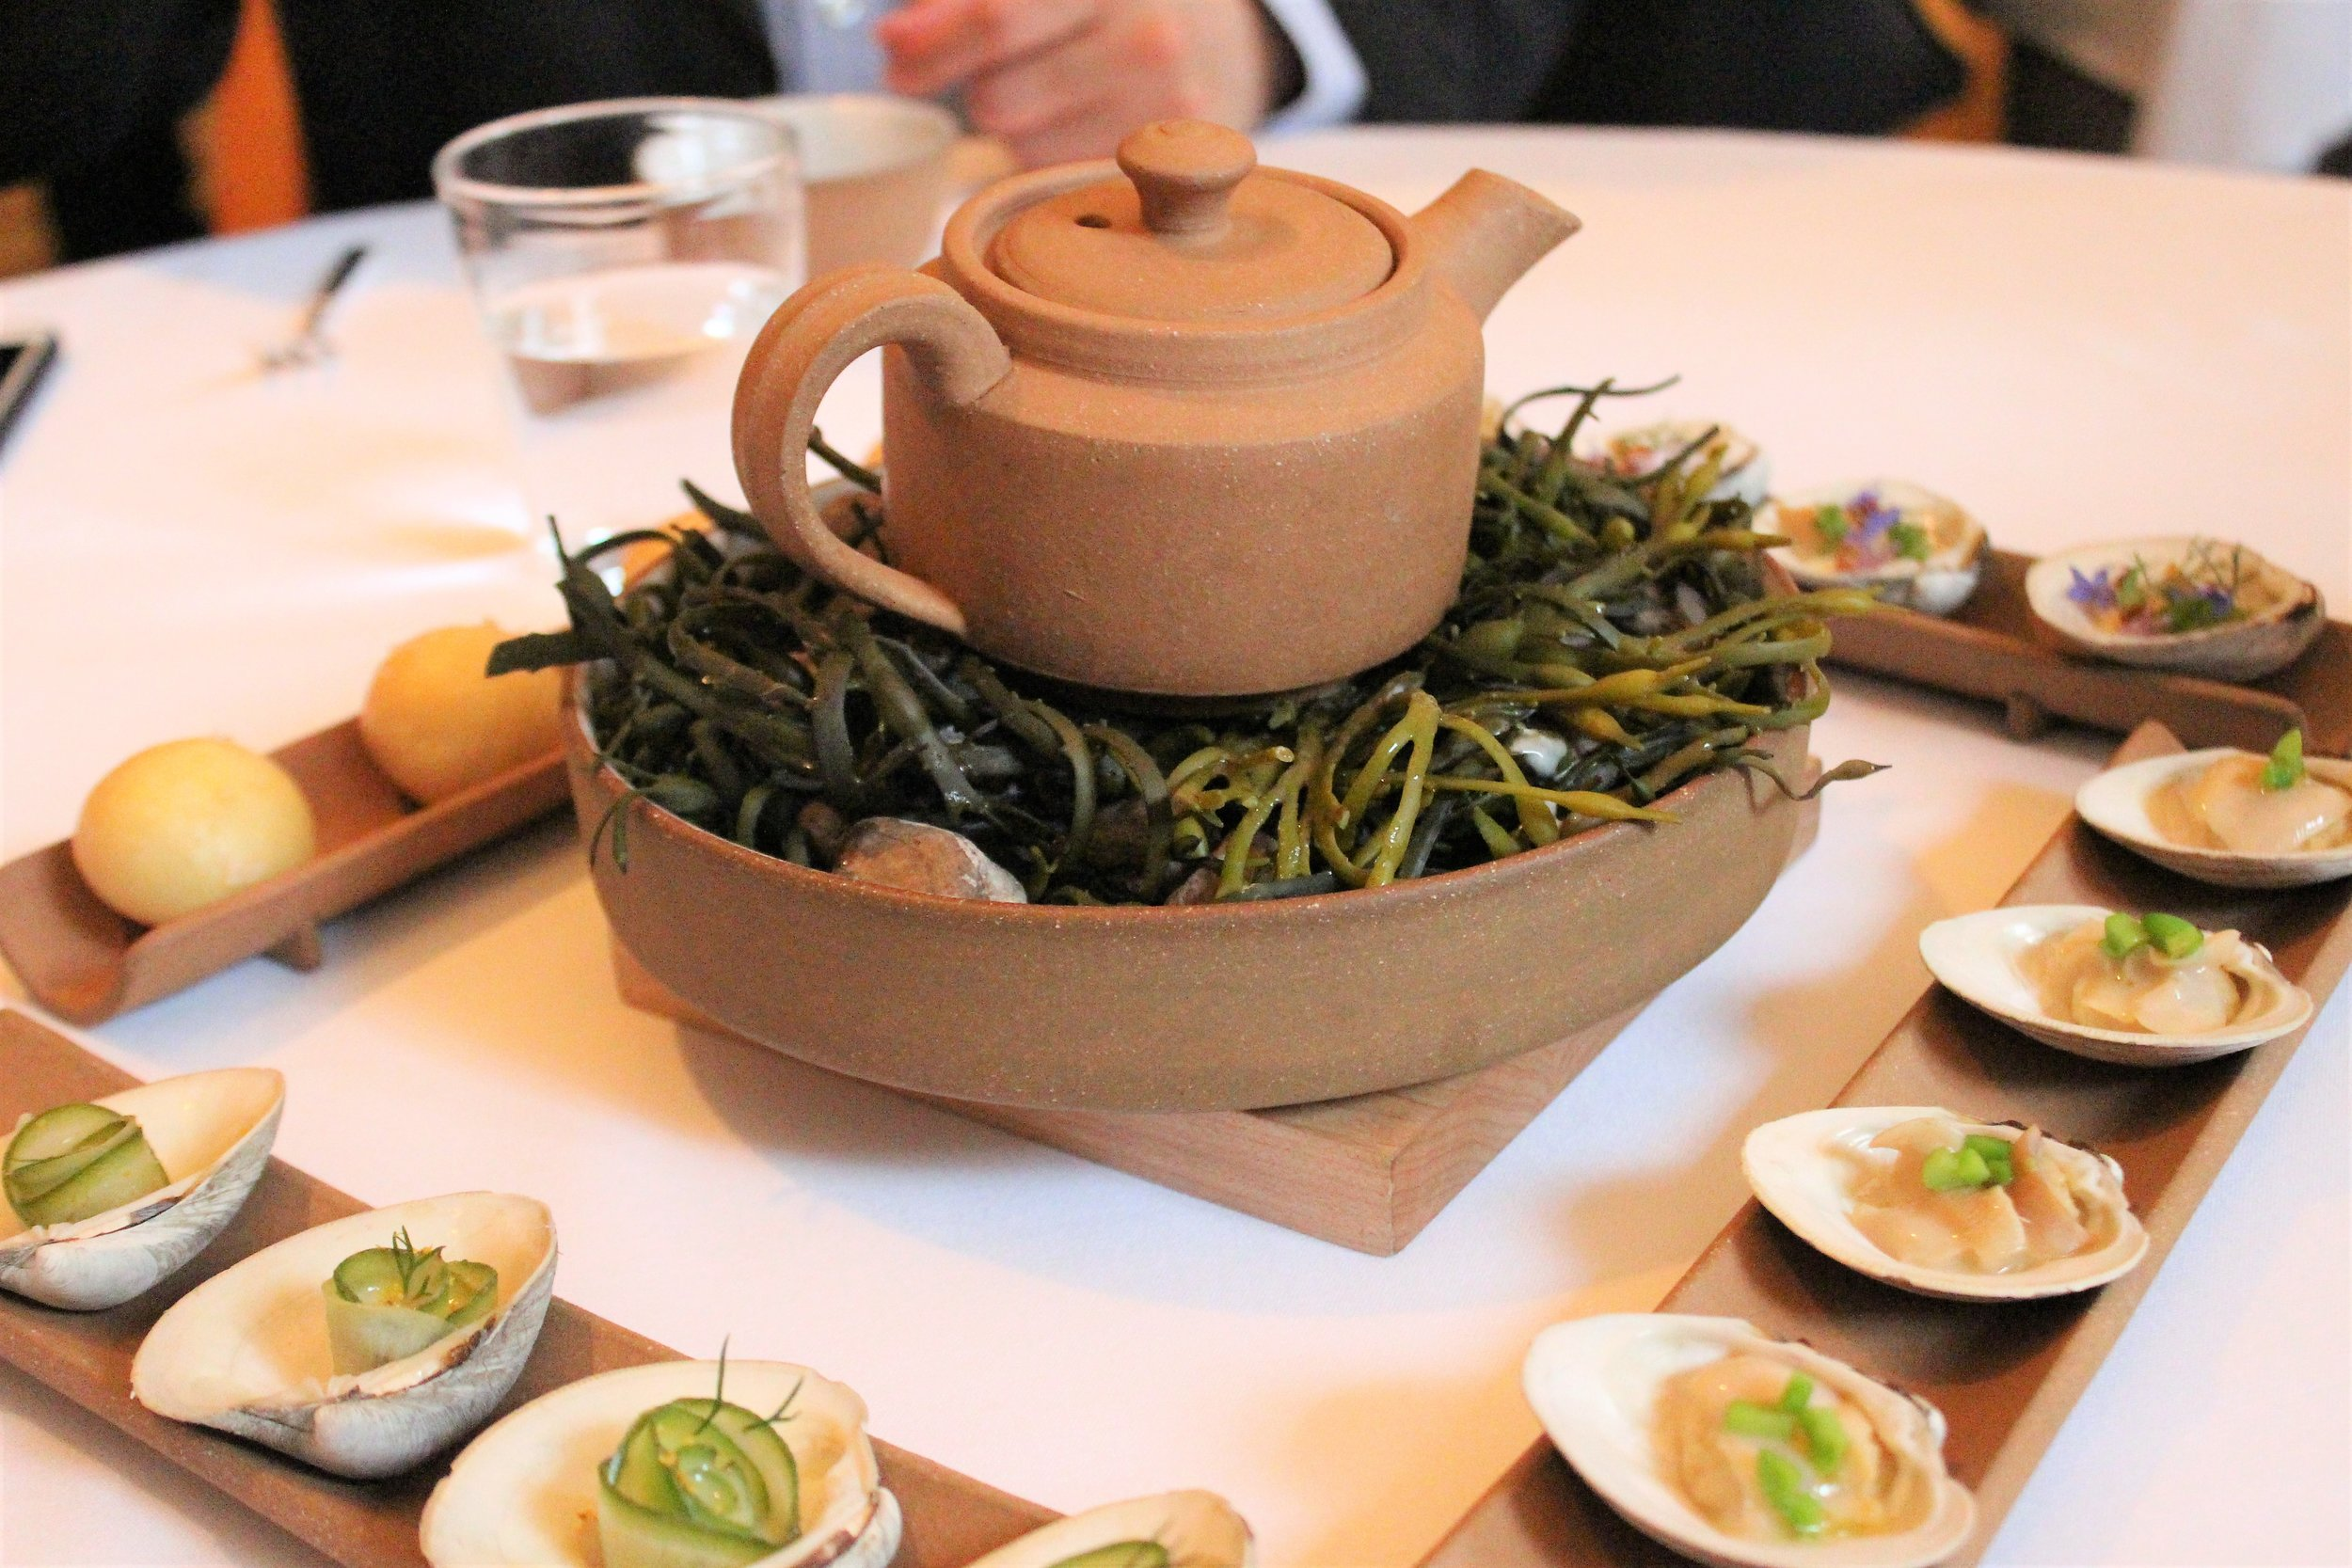 Little-Neck-Clam-Clambake-with-Velouté-2011-at-Eleven-Madison-Park-in-New-York-City.JPG